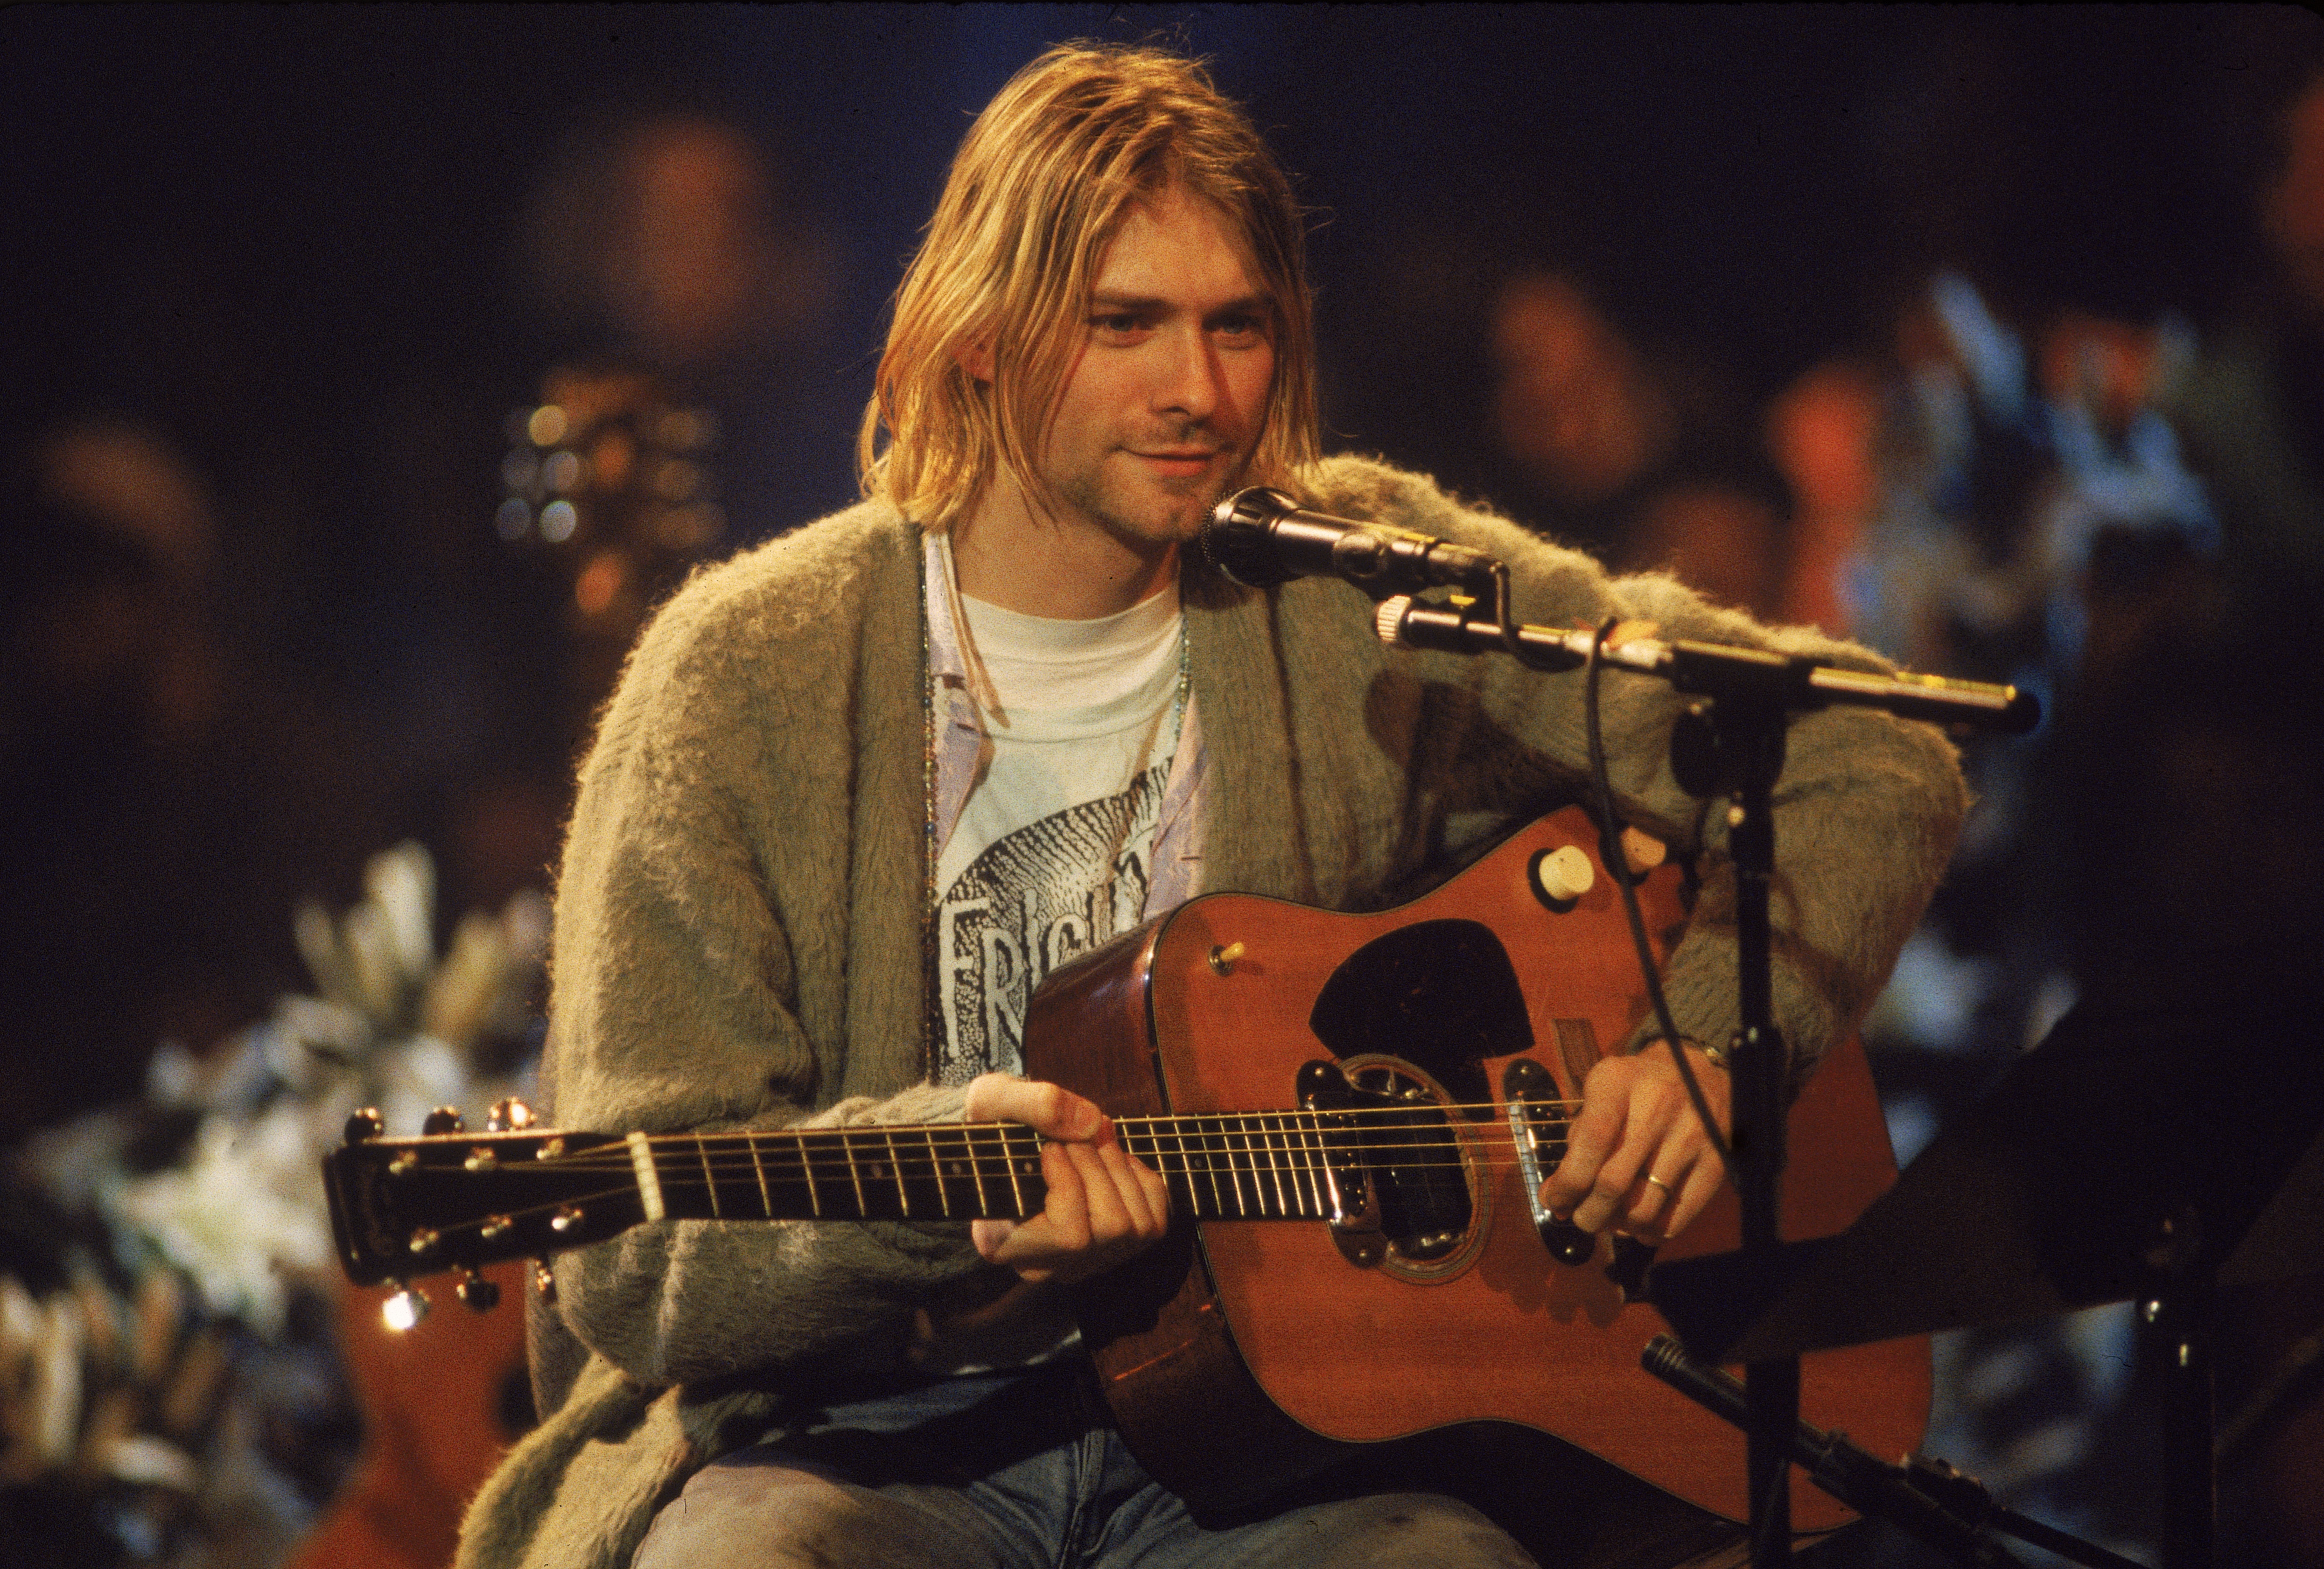 Kurt Cobain performs with Nirvana during a taping of MTV Unplugged on Nov. 18, 1993 in New York City.